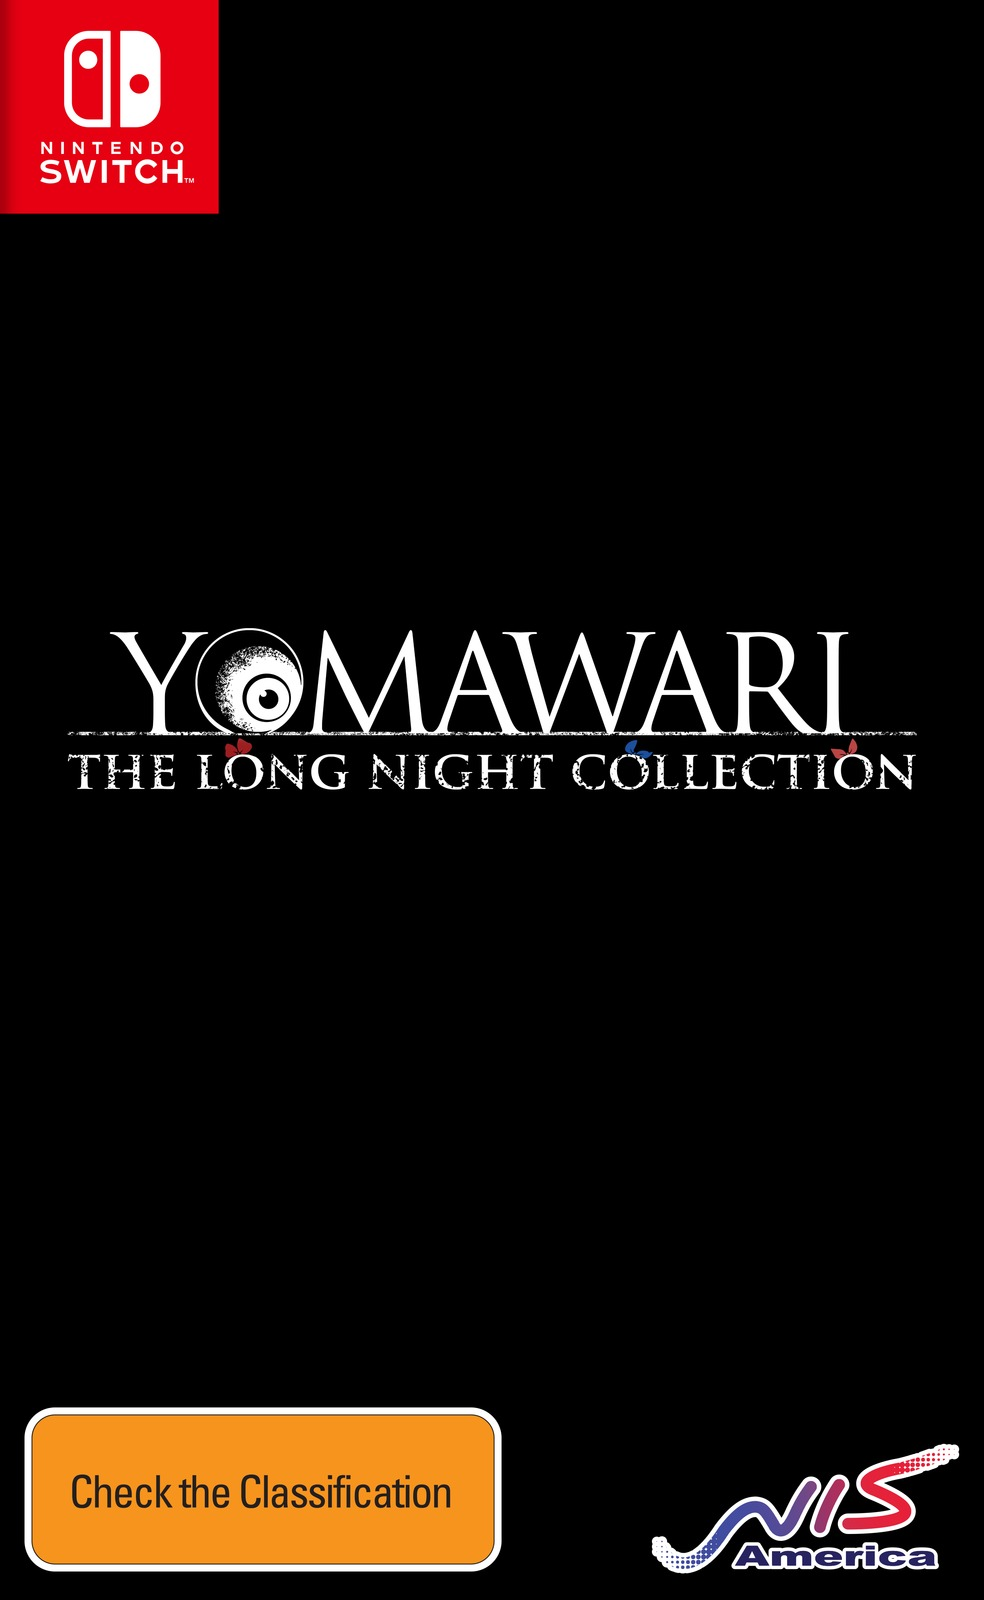 Yomawari: The Long Night Collection for Nintendo Switch image